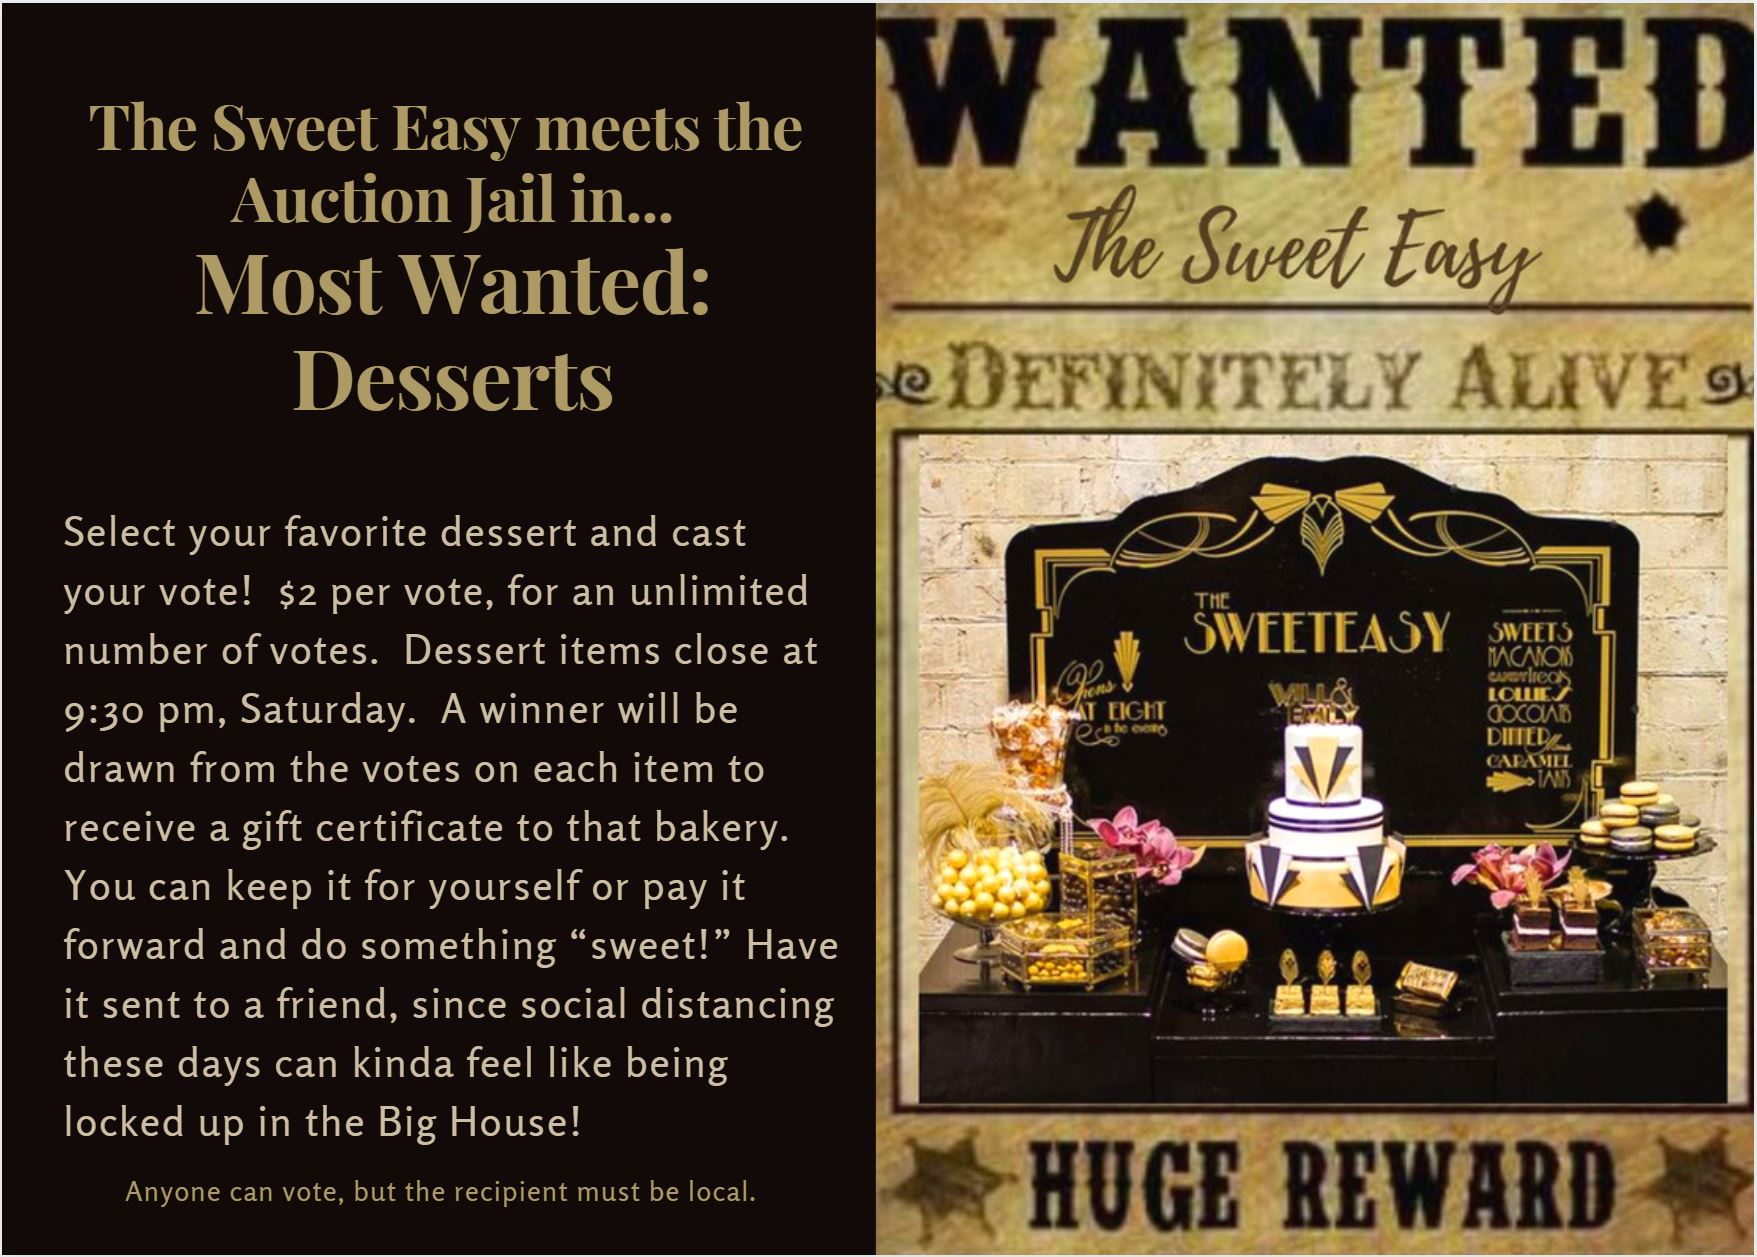 Most Wanted: Desserts